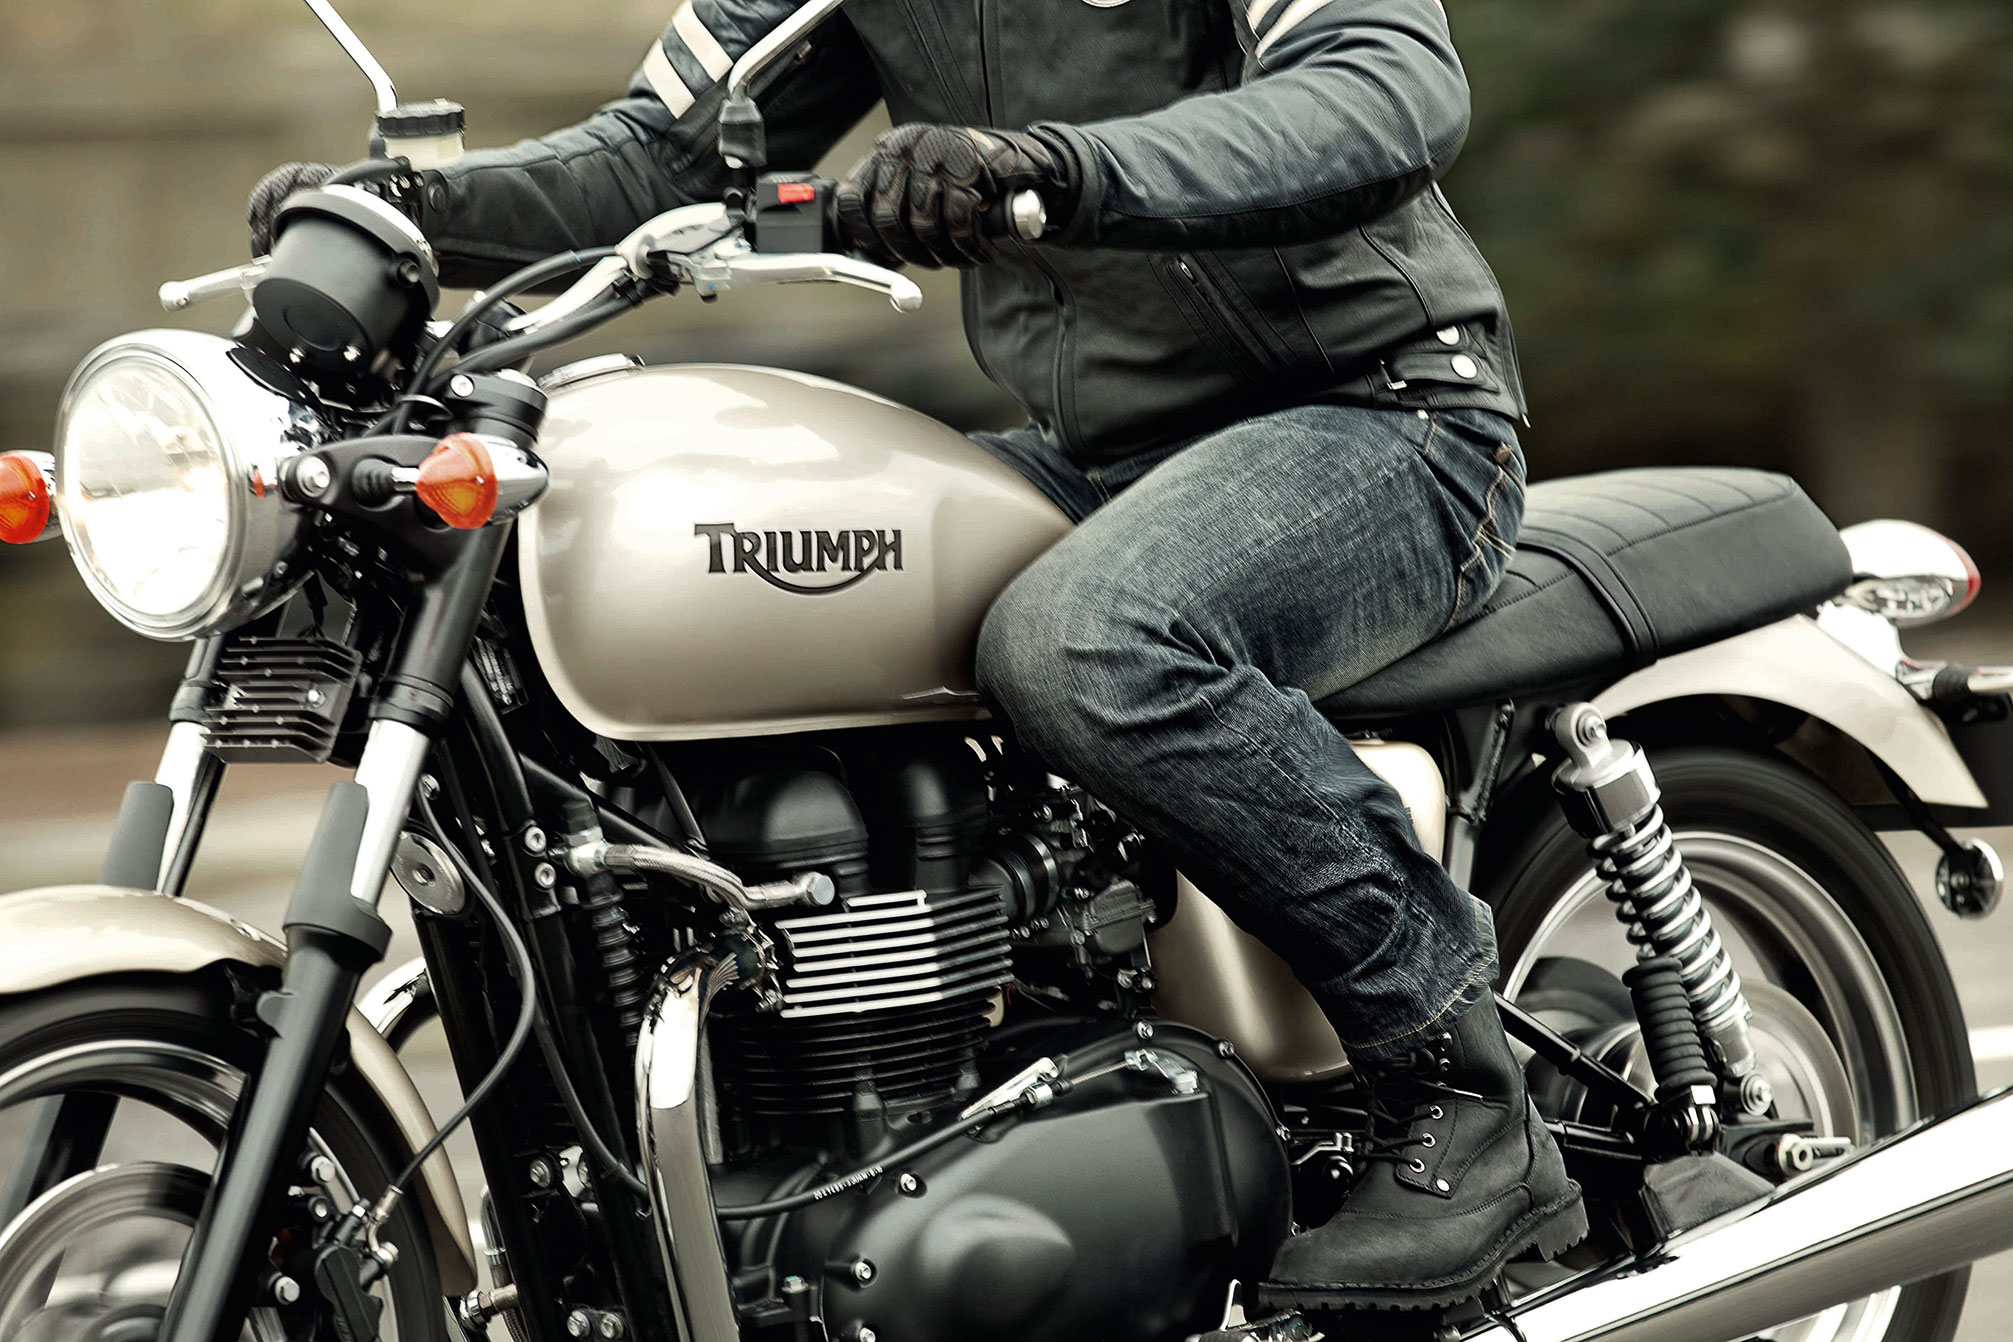 2013 Triumph Bonneville Review